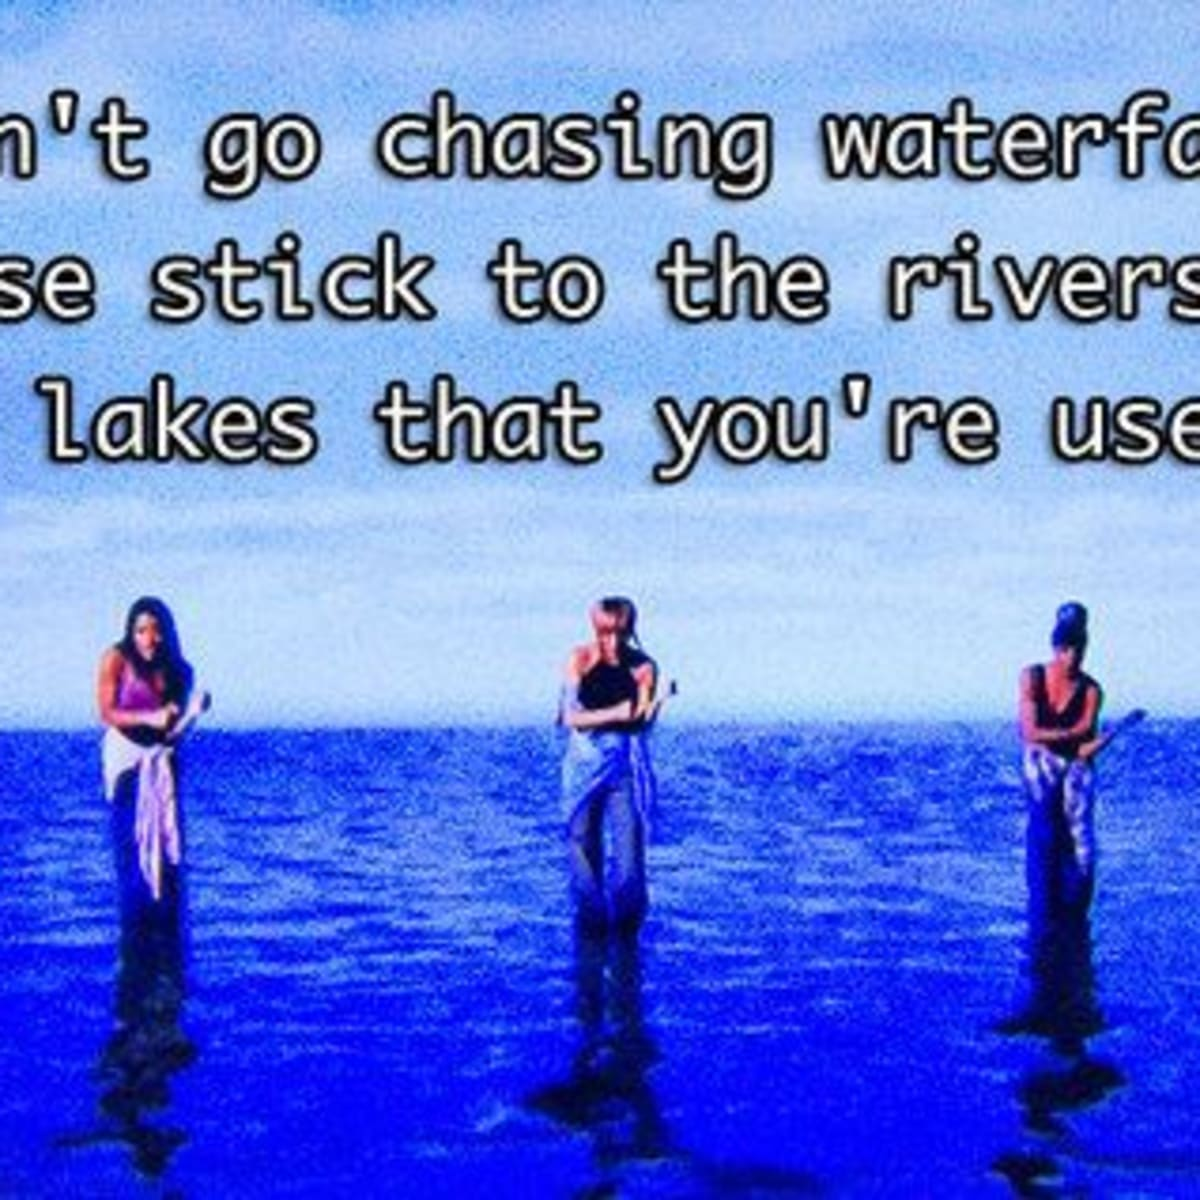 Don T Go Chasing Waterfalls Please Stick To The Rivers And The Lakes That You Re Used To Letterpile